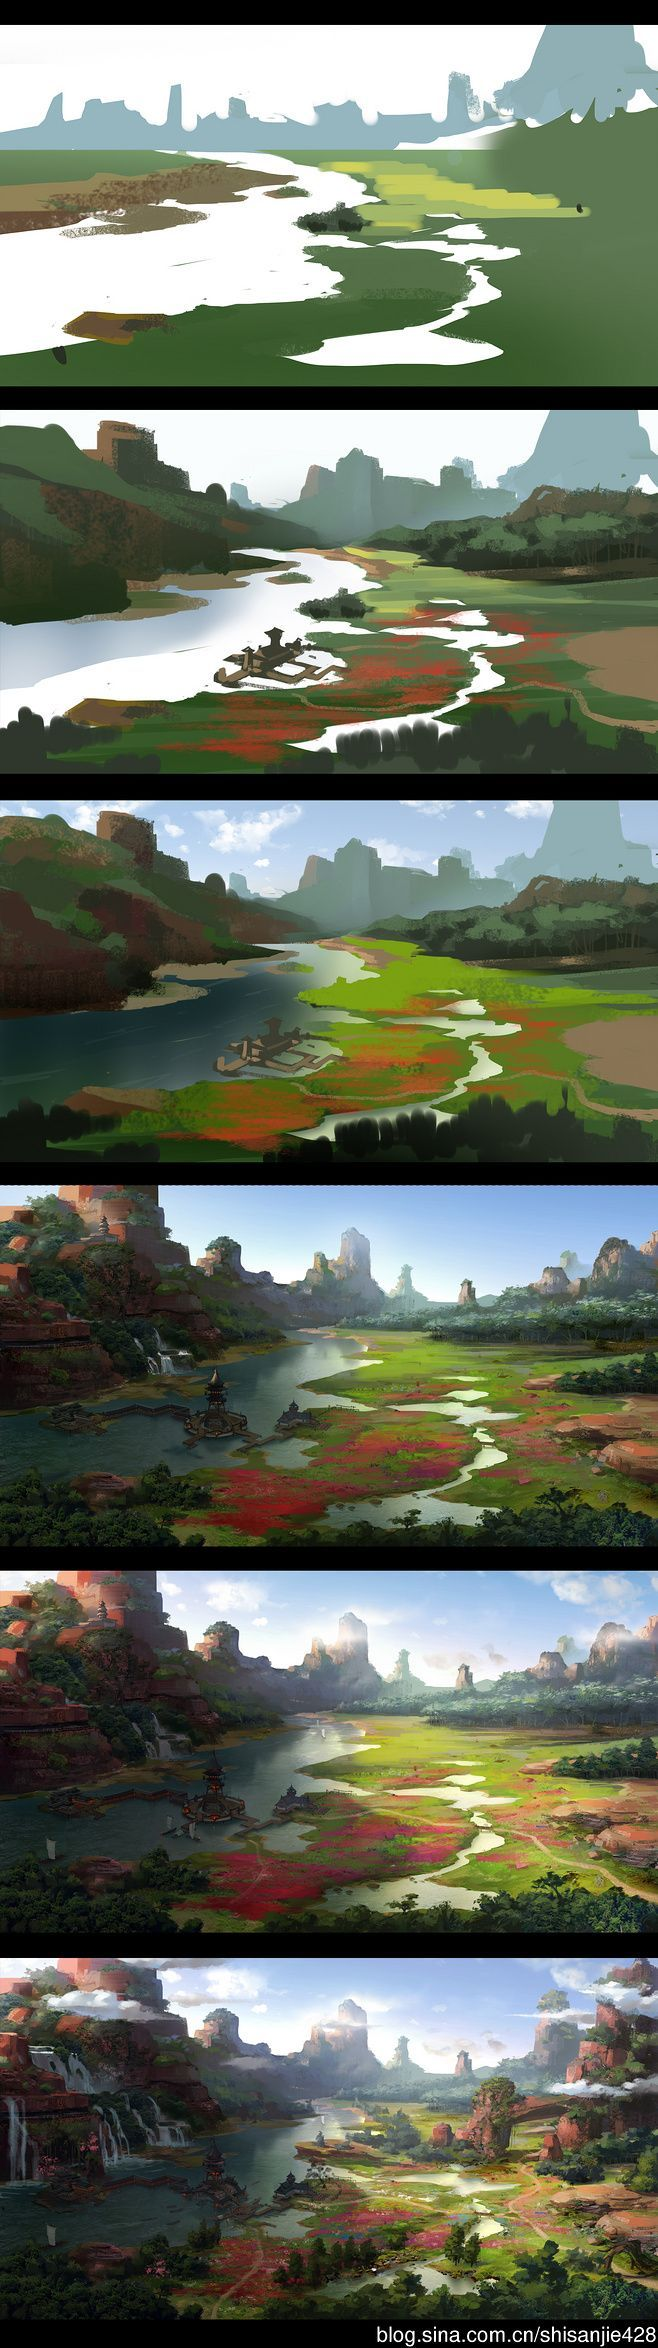 How To Paint Valley More Artworks And Tutorials: https://www.facebook.com/lapukacom This artwork does not belong to me! I post it because I find if fascinating. Some of my original art can be found at http://lapuka.com